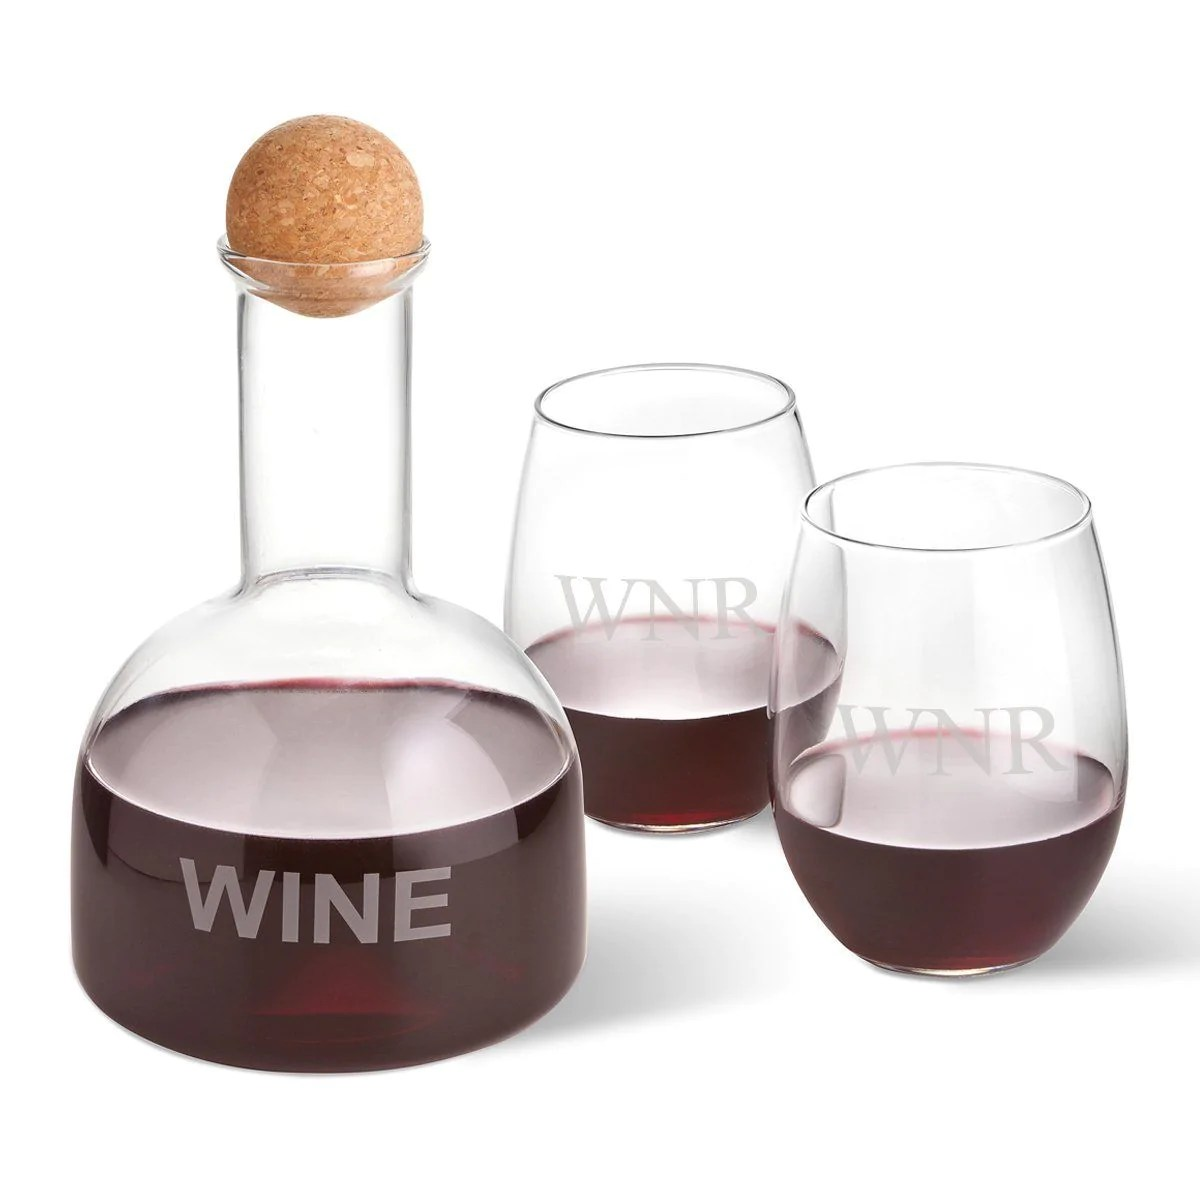 Unique Wine Decanters Personalized Wine Decanter In Wood Crate With Set Of 2